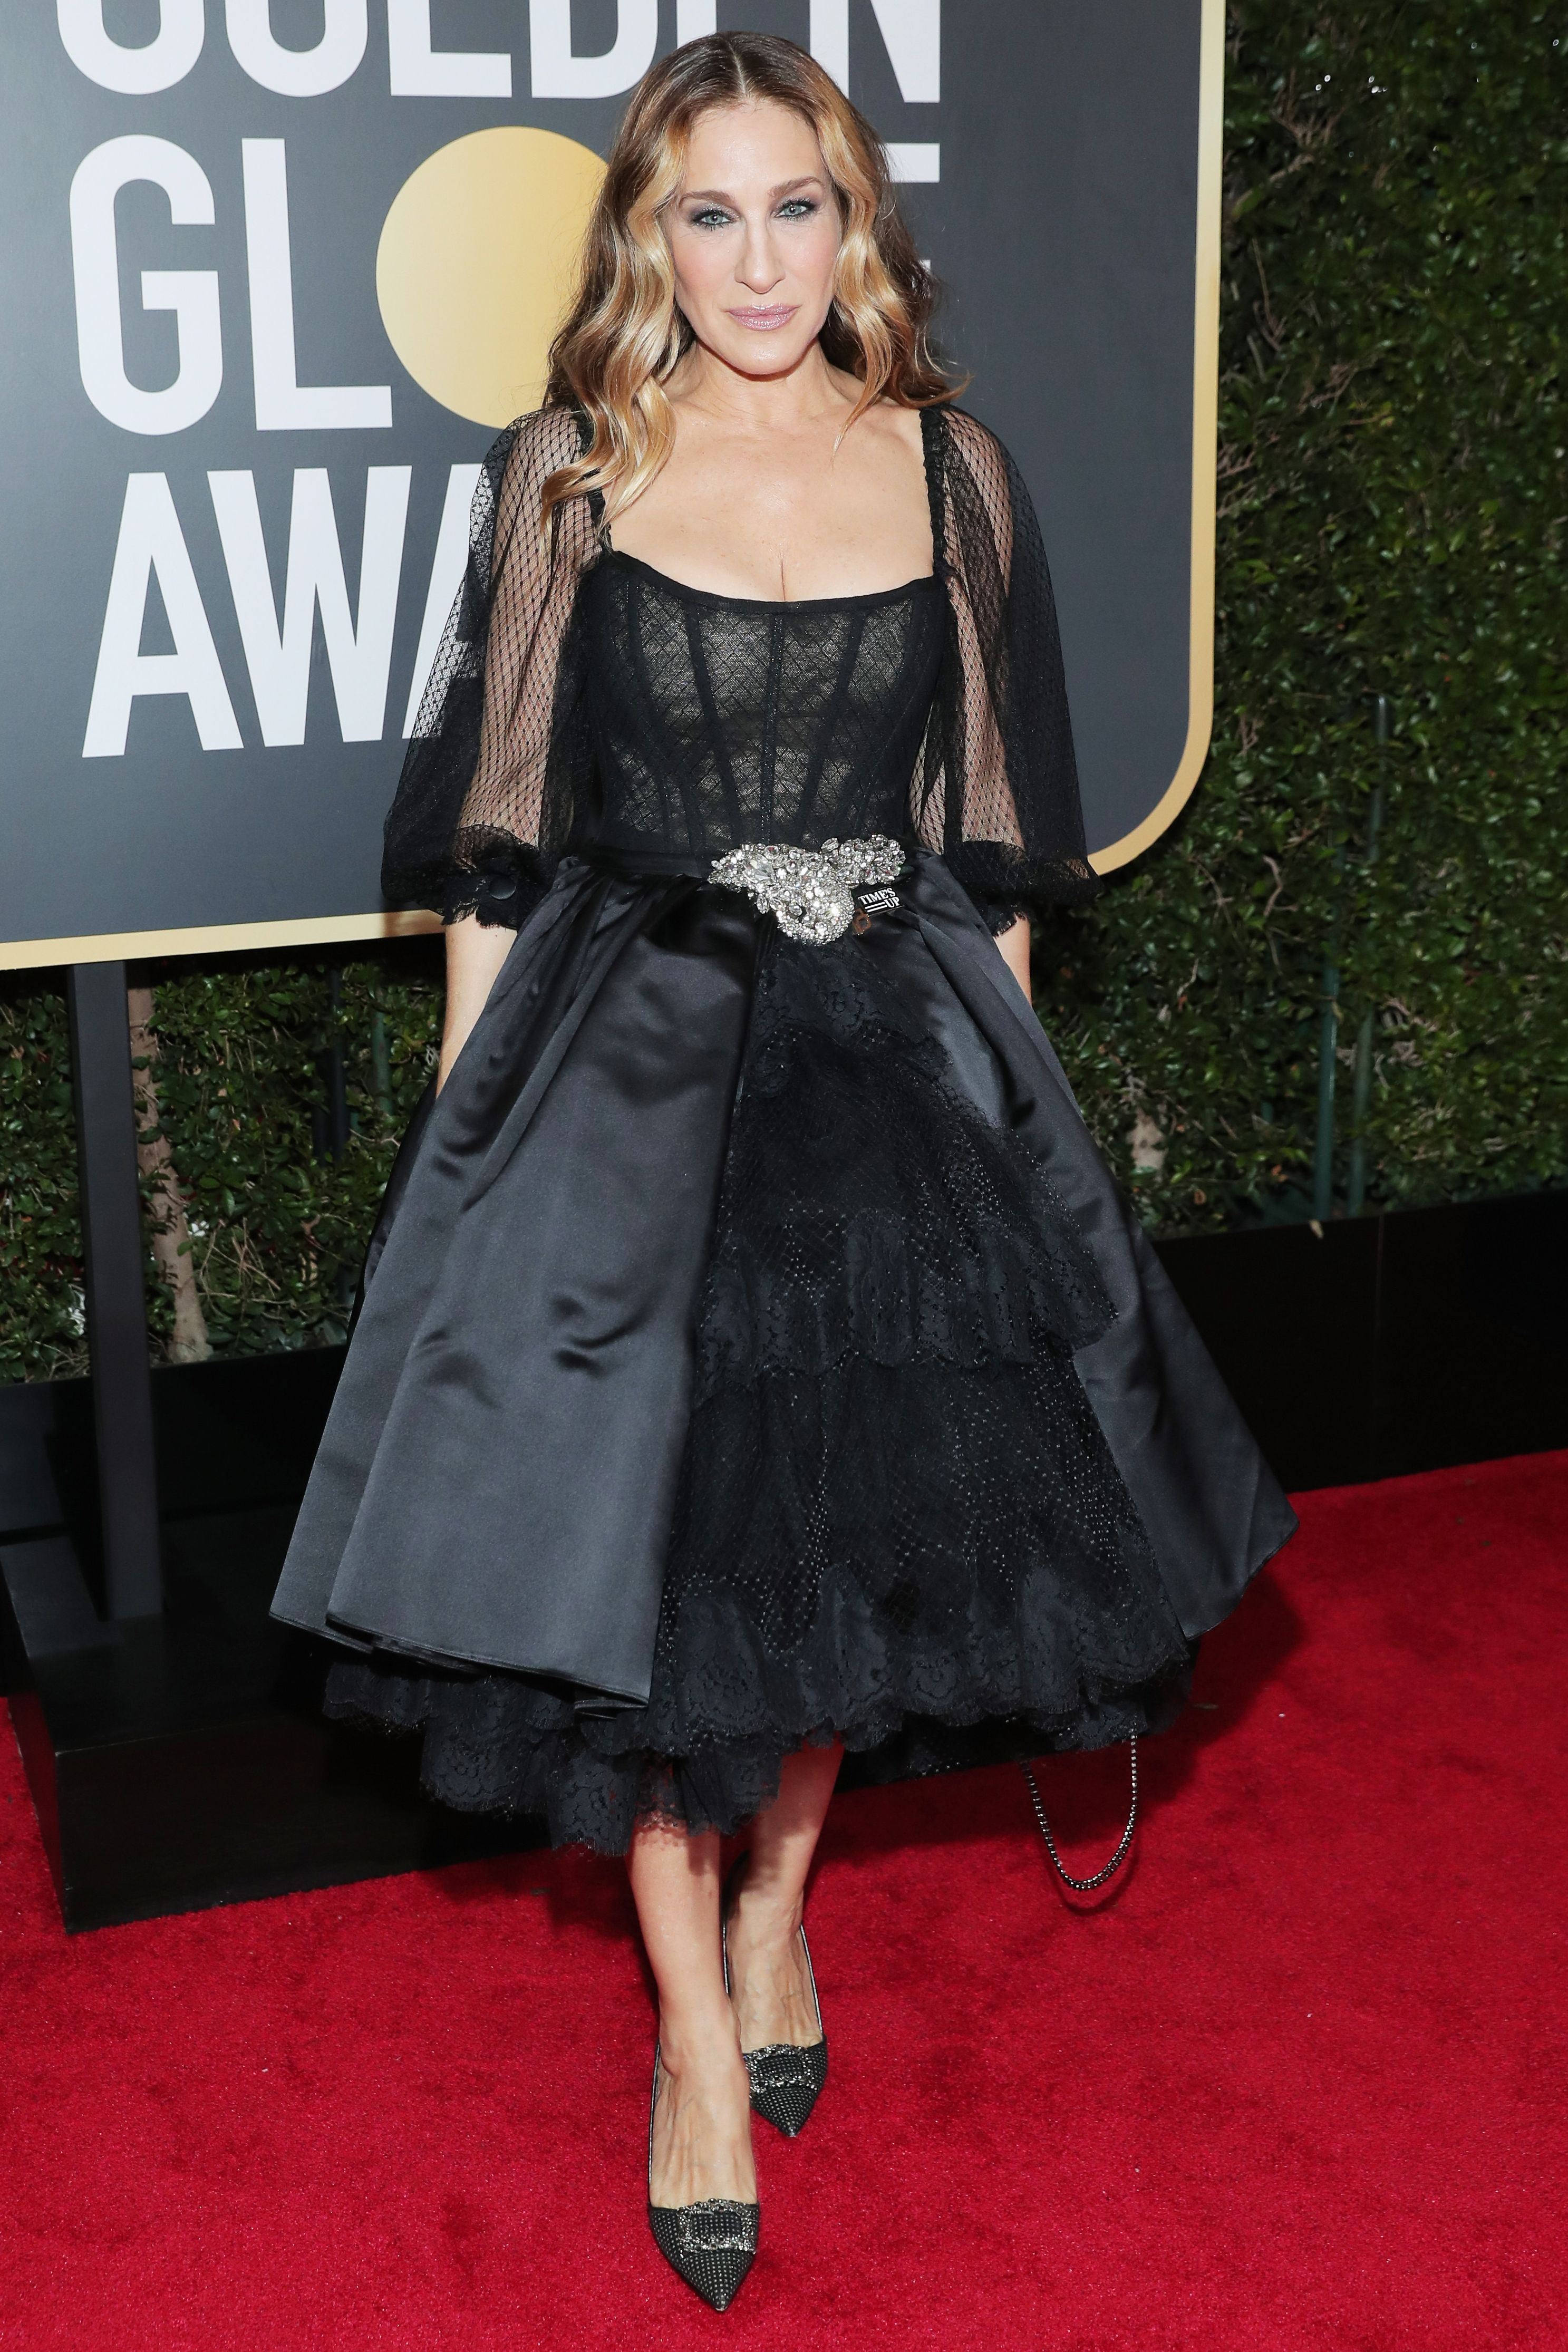 All the Glamorous 2018 Golden Globes Red Carpet Arrivals - Sarah Jessica  Parker from InStyle.com 69fdb7b60f2